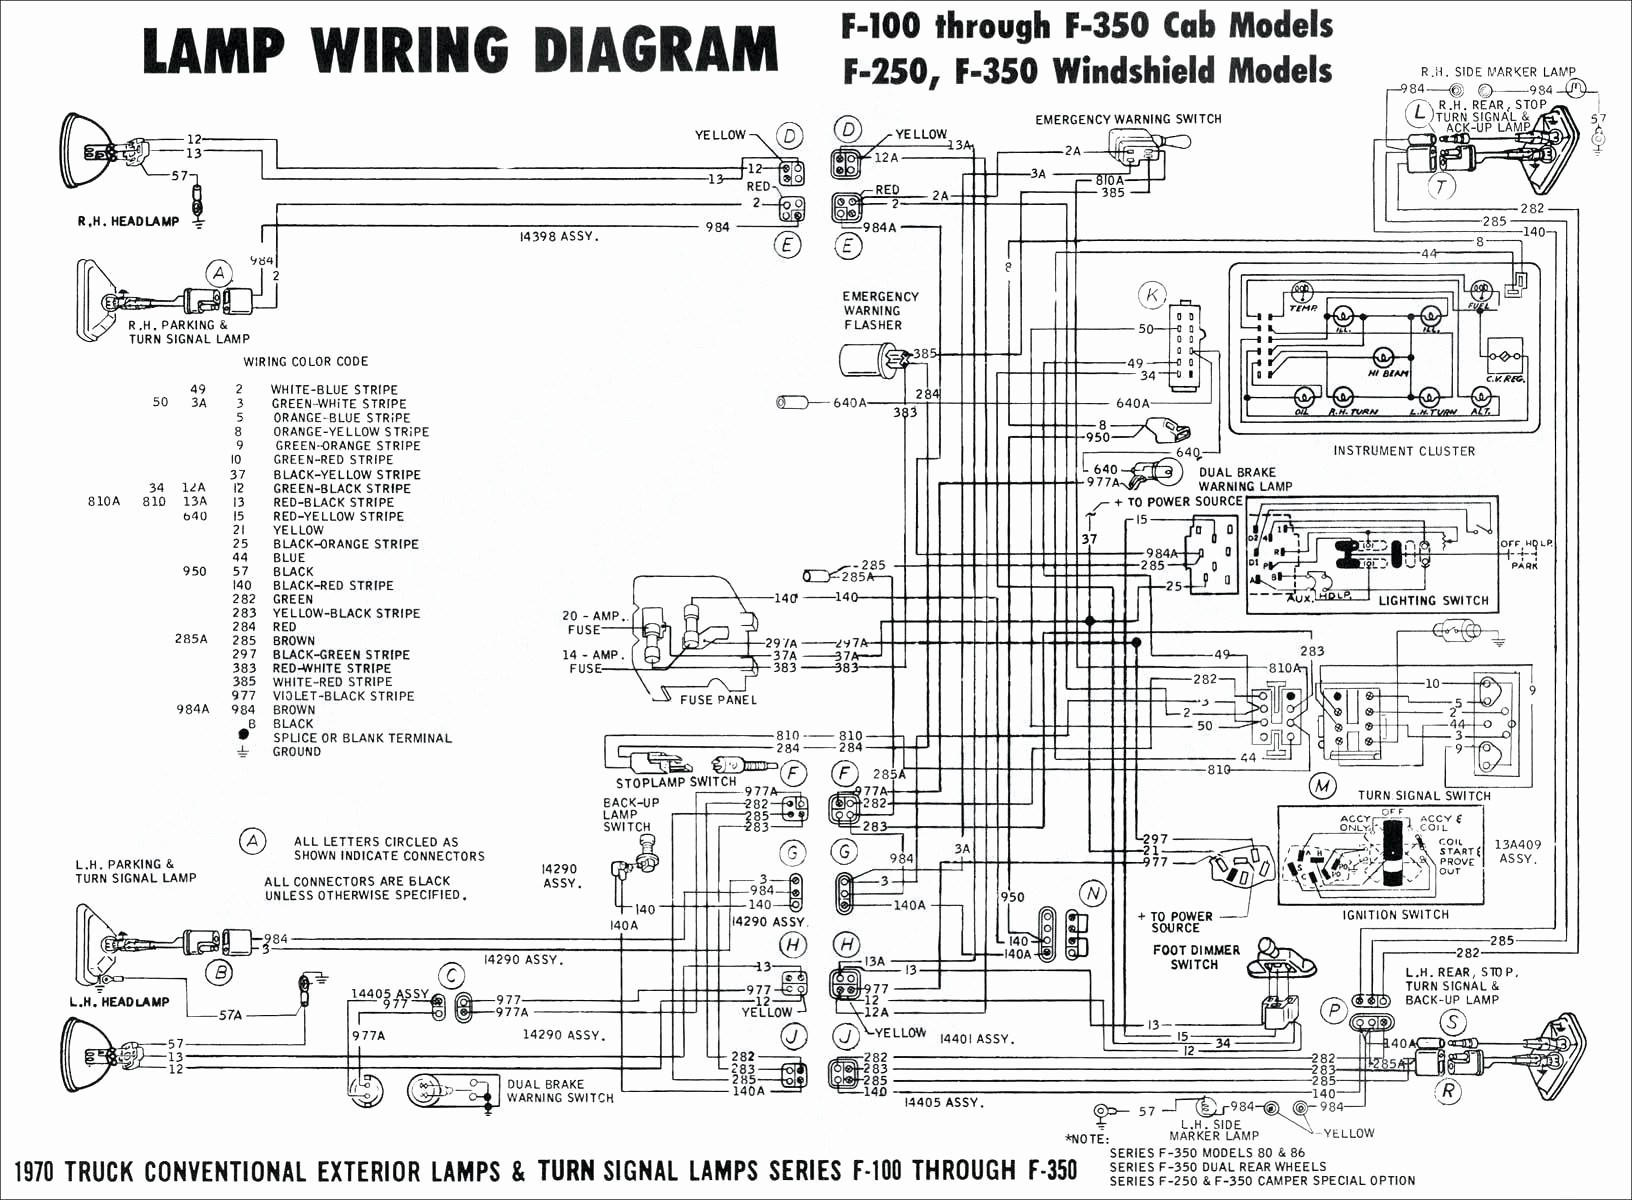 Jd Gator 4×2 Wiring Diagram 35d Peg Perego Power Wheels Wiring Diagram Of Jd Gator 4×2 Wiring Diagram